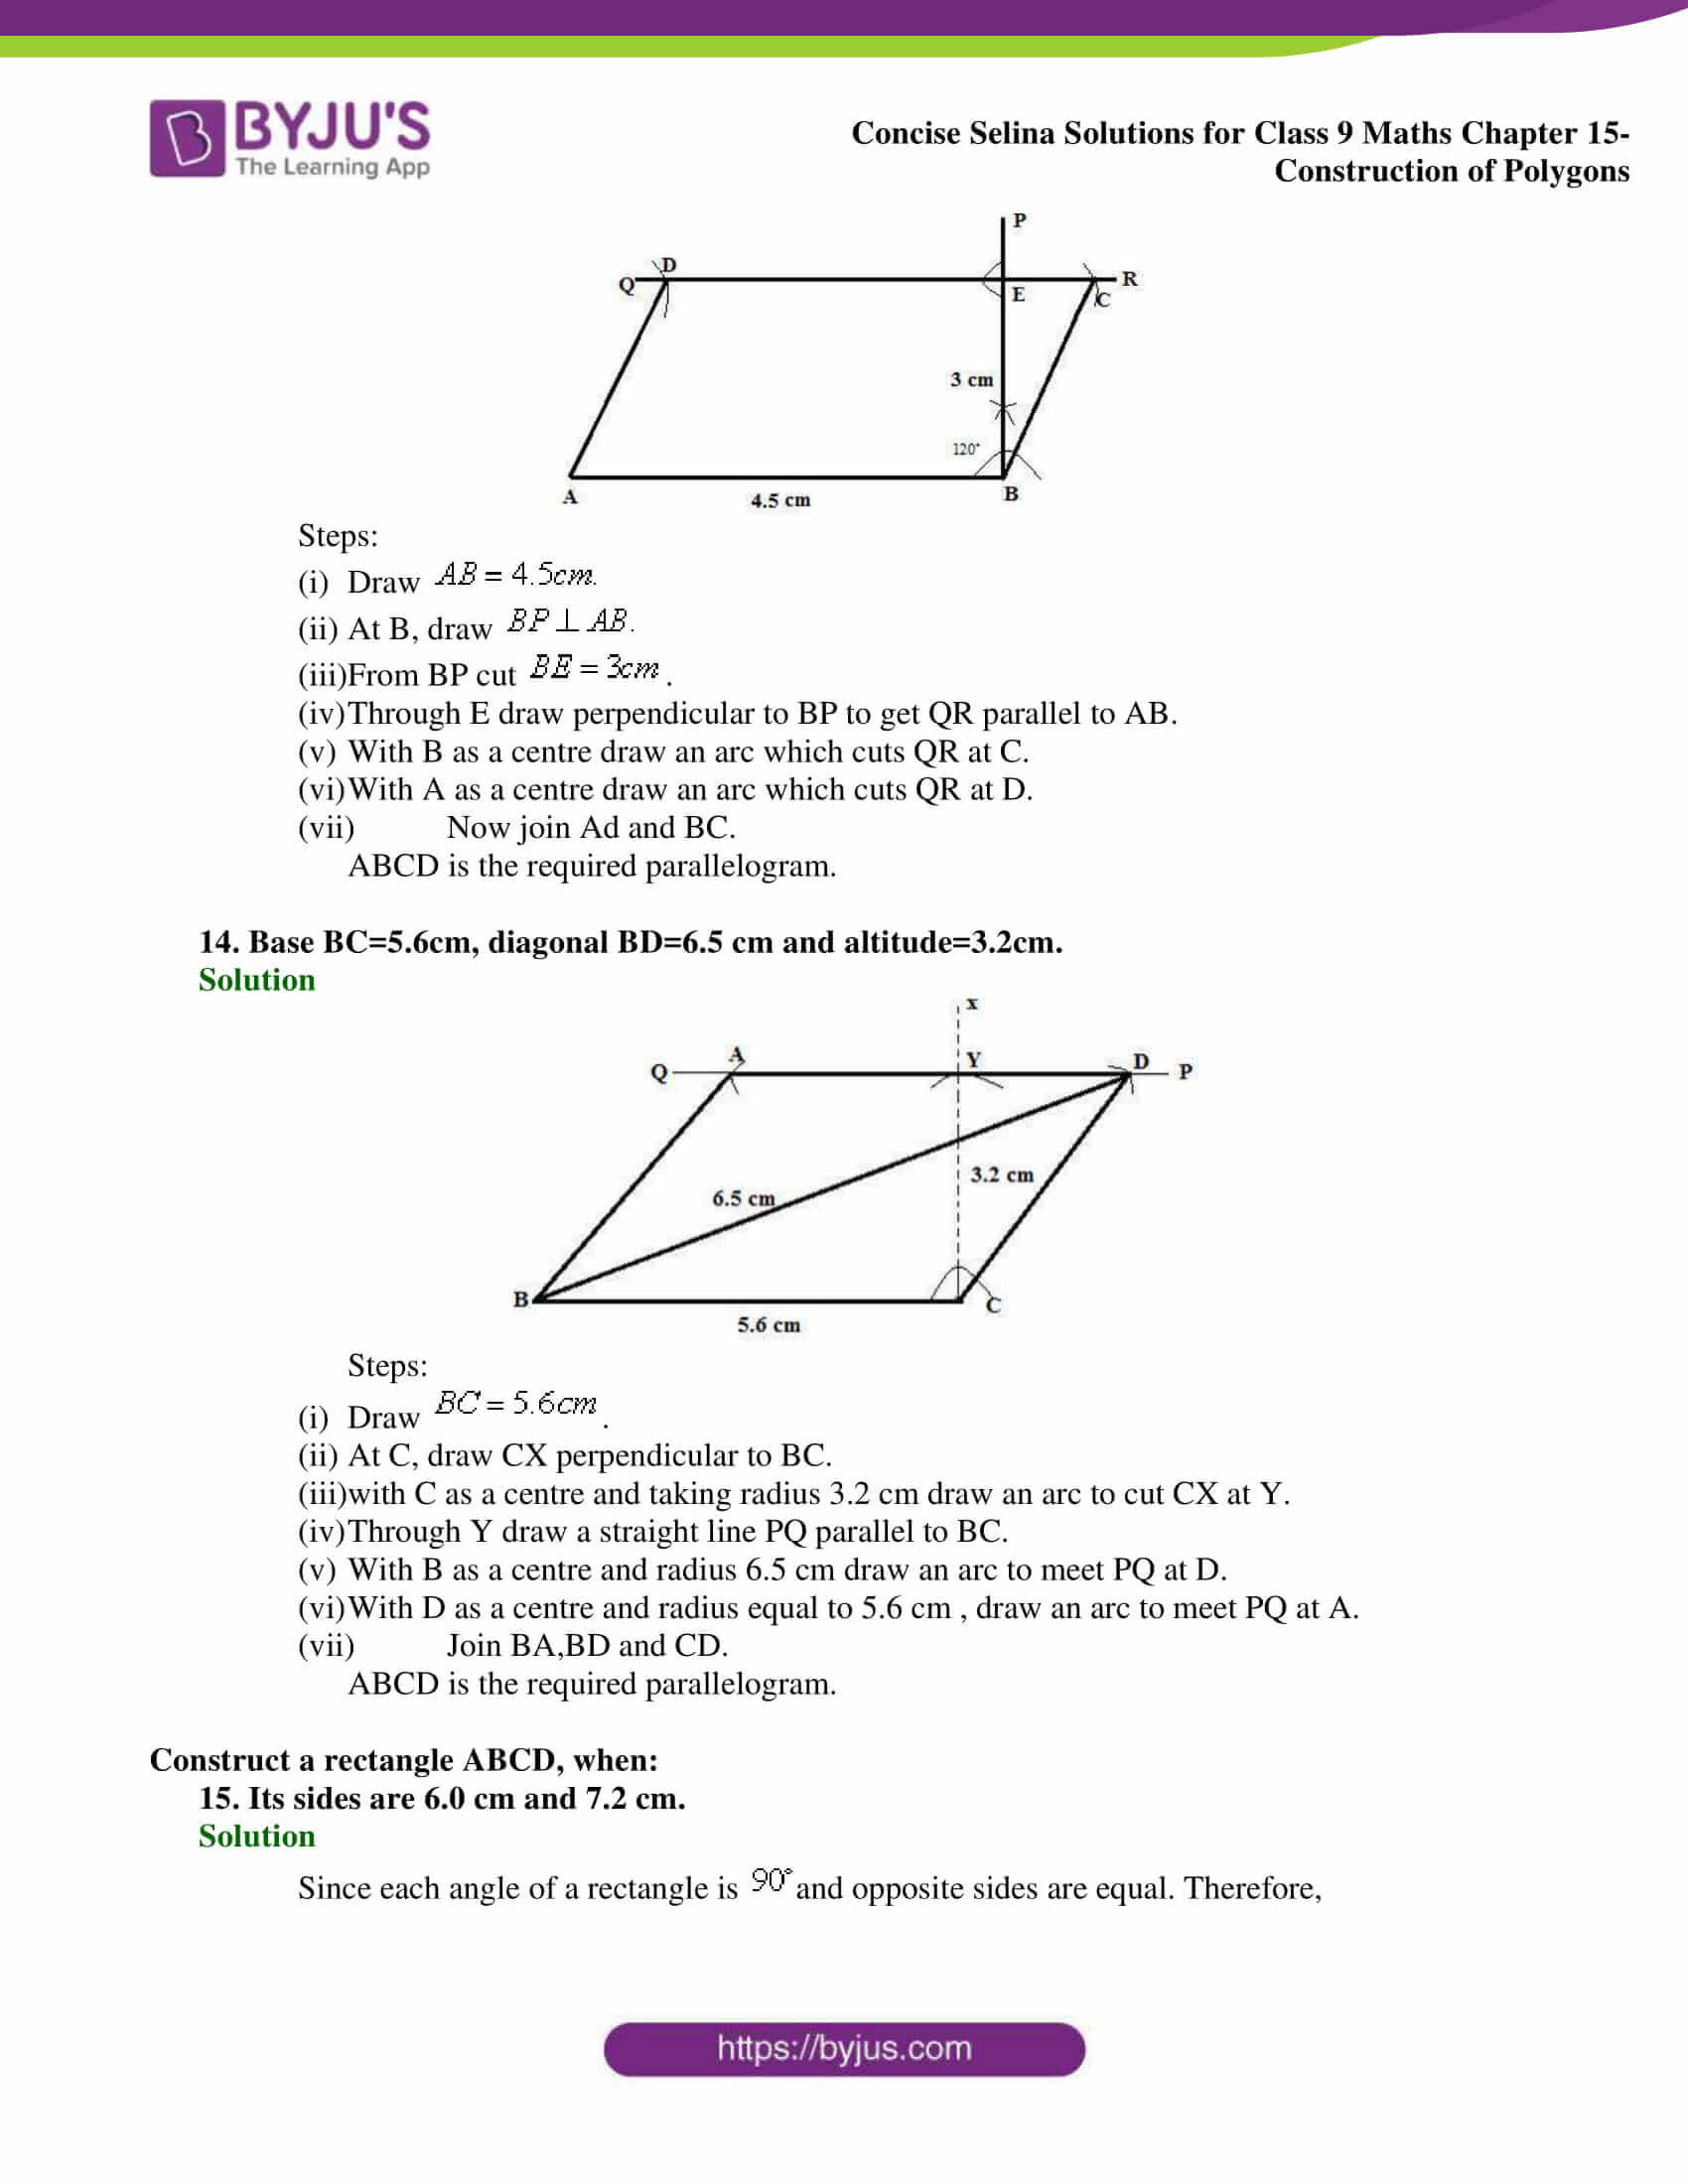 selina Solutions for Class 9 Maths Chapter 15 part 07